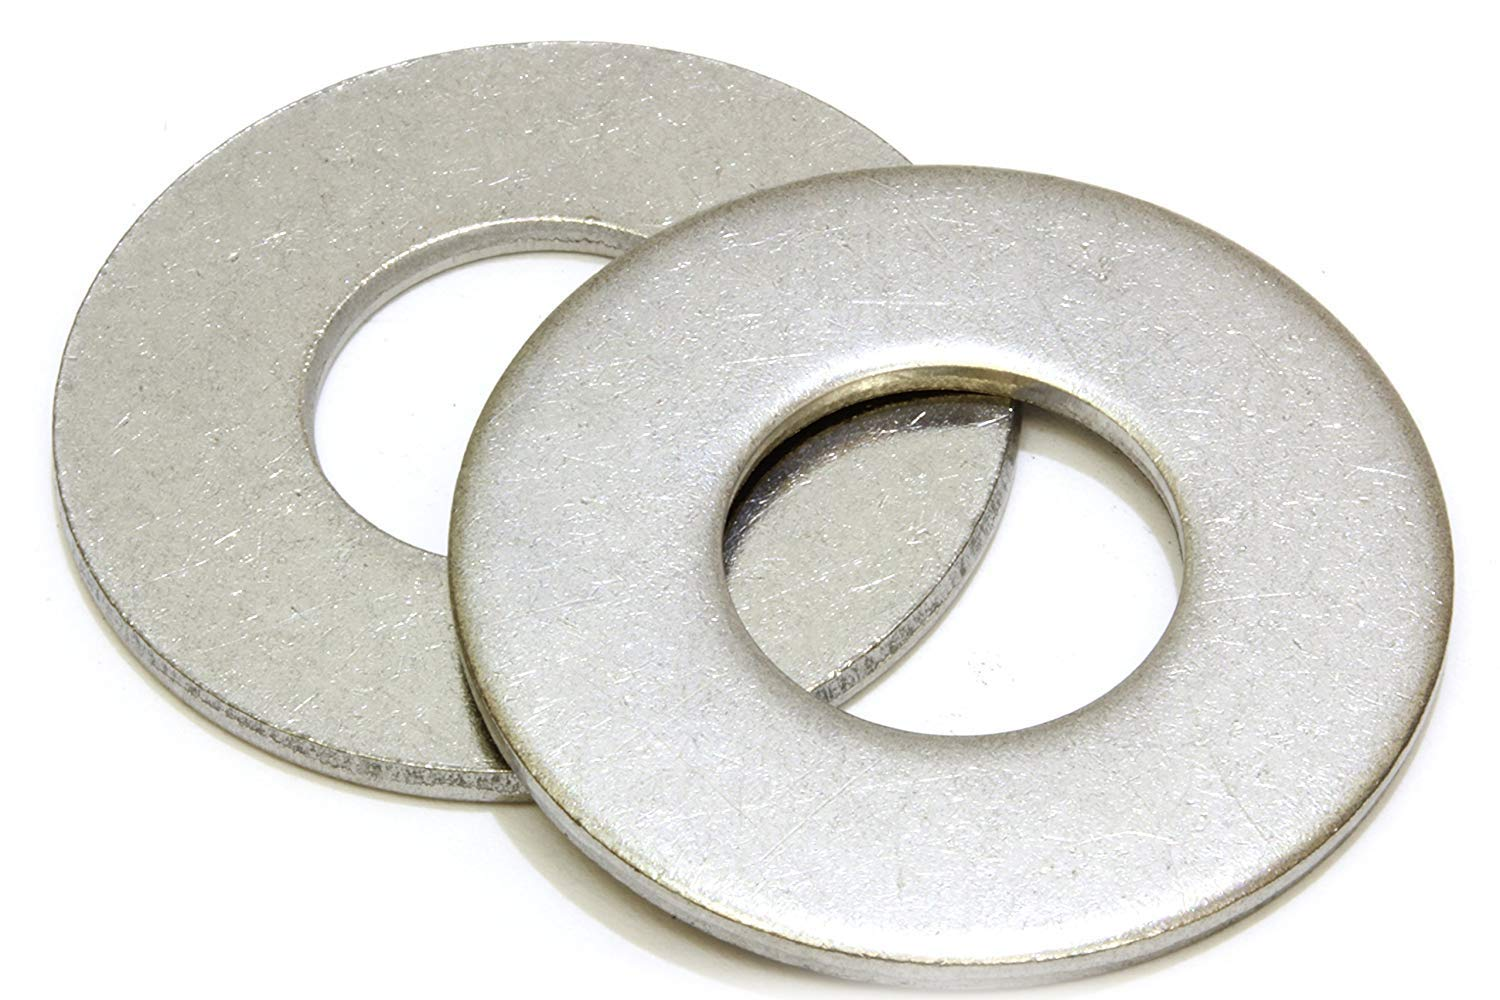 1/4'' Stainless Flat Washer, 5/8'' Outside Diameter (100 Pack)- Choose Size, By Bolt Dropper, 18-8 (304) Stainless Steel